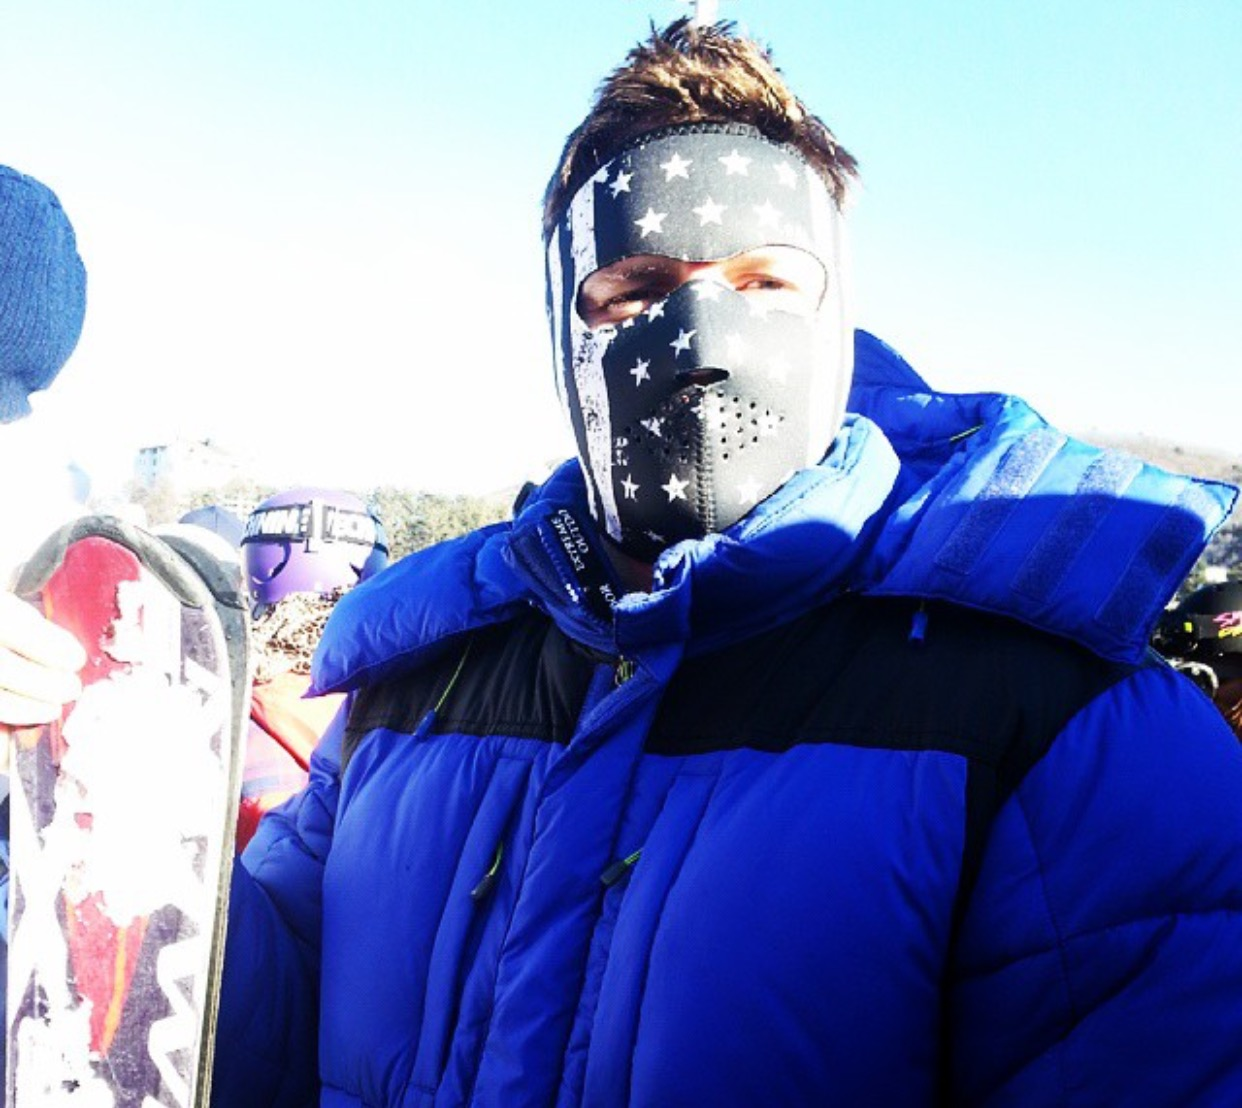 flag-neoprene-face-mask.jpg